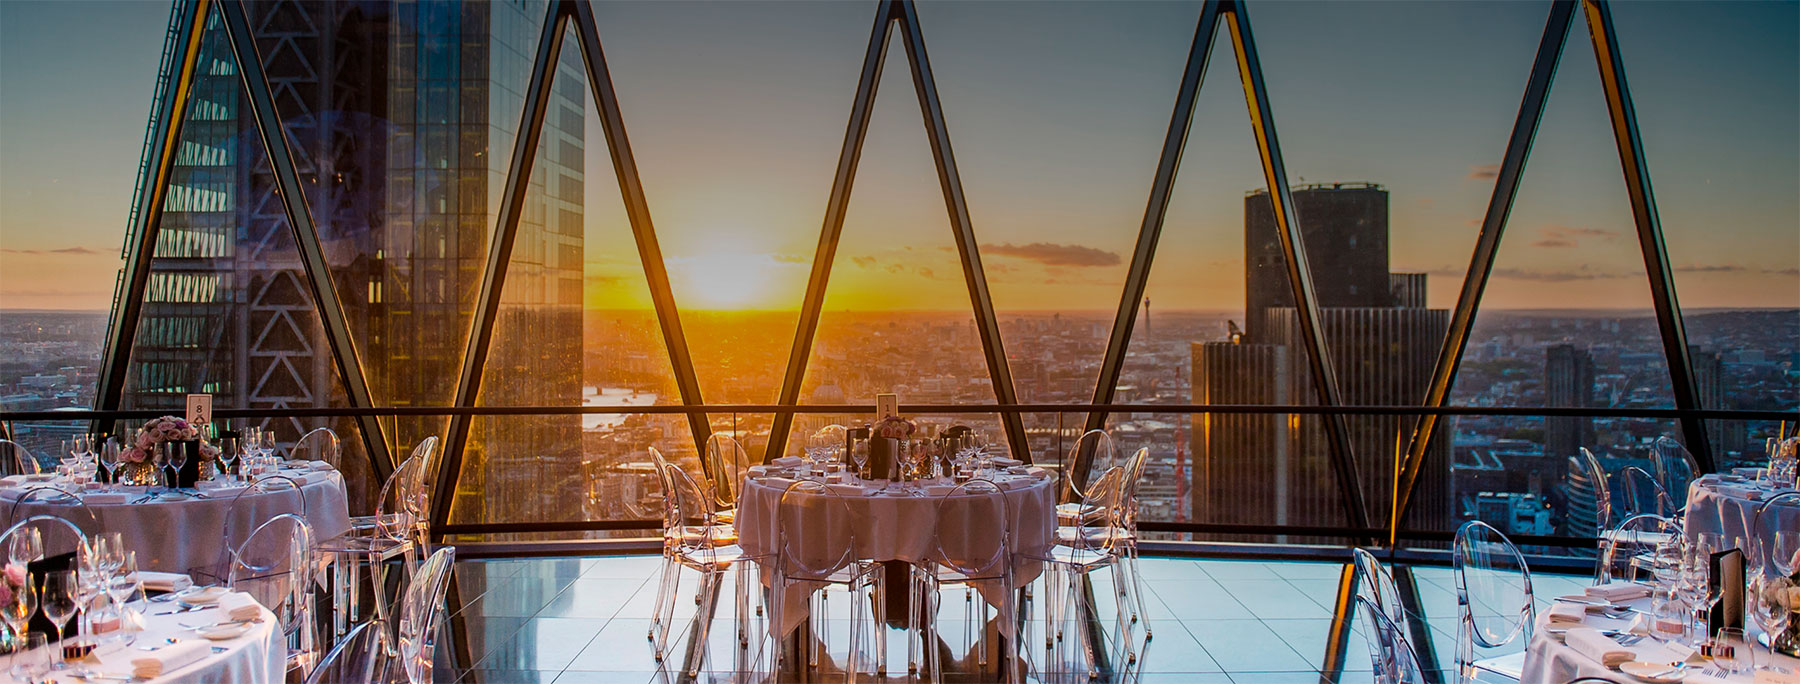 Searcys Restaurants Event Spaces Champagne Bars And